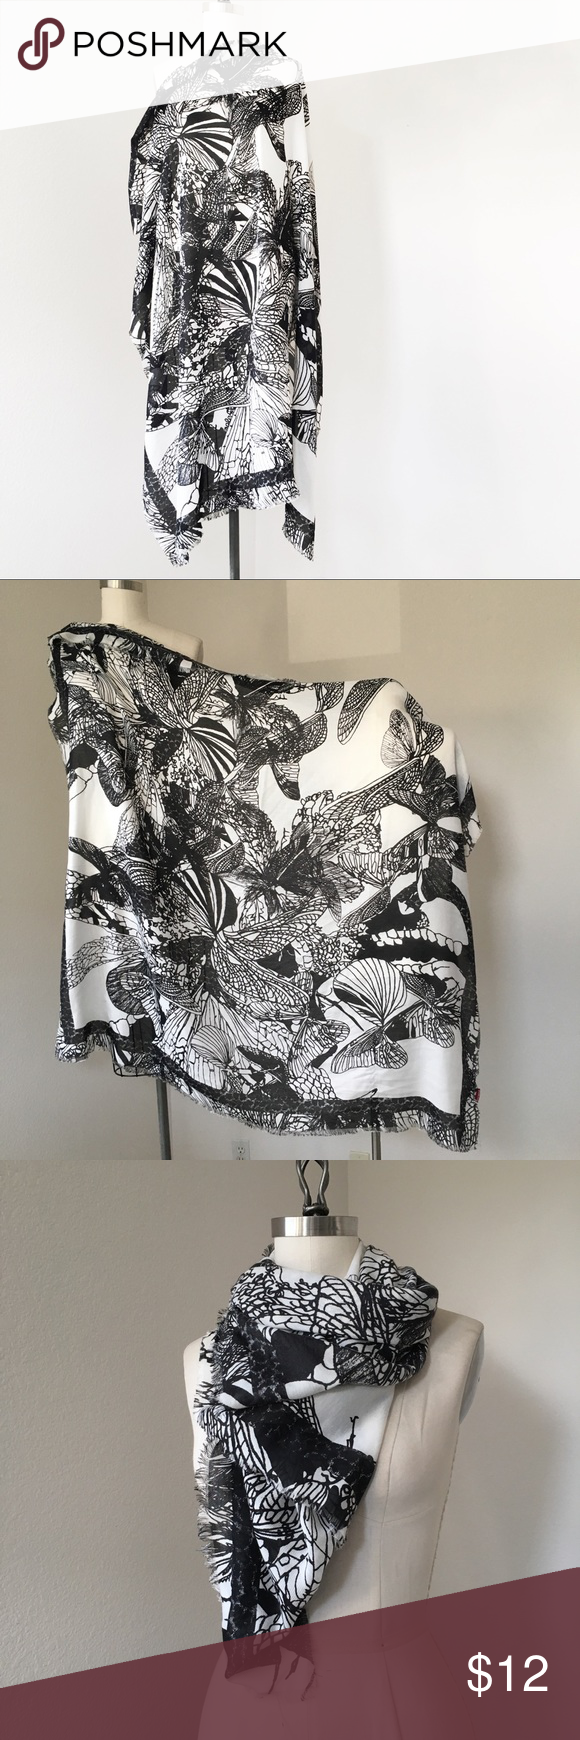 Abstract Black and White Butterfly Scarf Worn once and washed. Soft and cozy, a great add on for a basic t-shirt and jeans look. H&M Accessories Scarves & Wraps